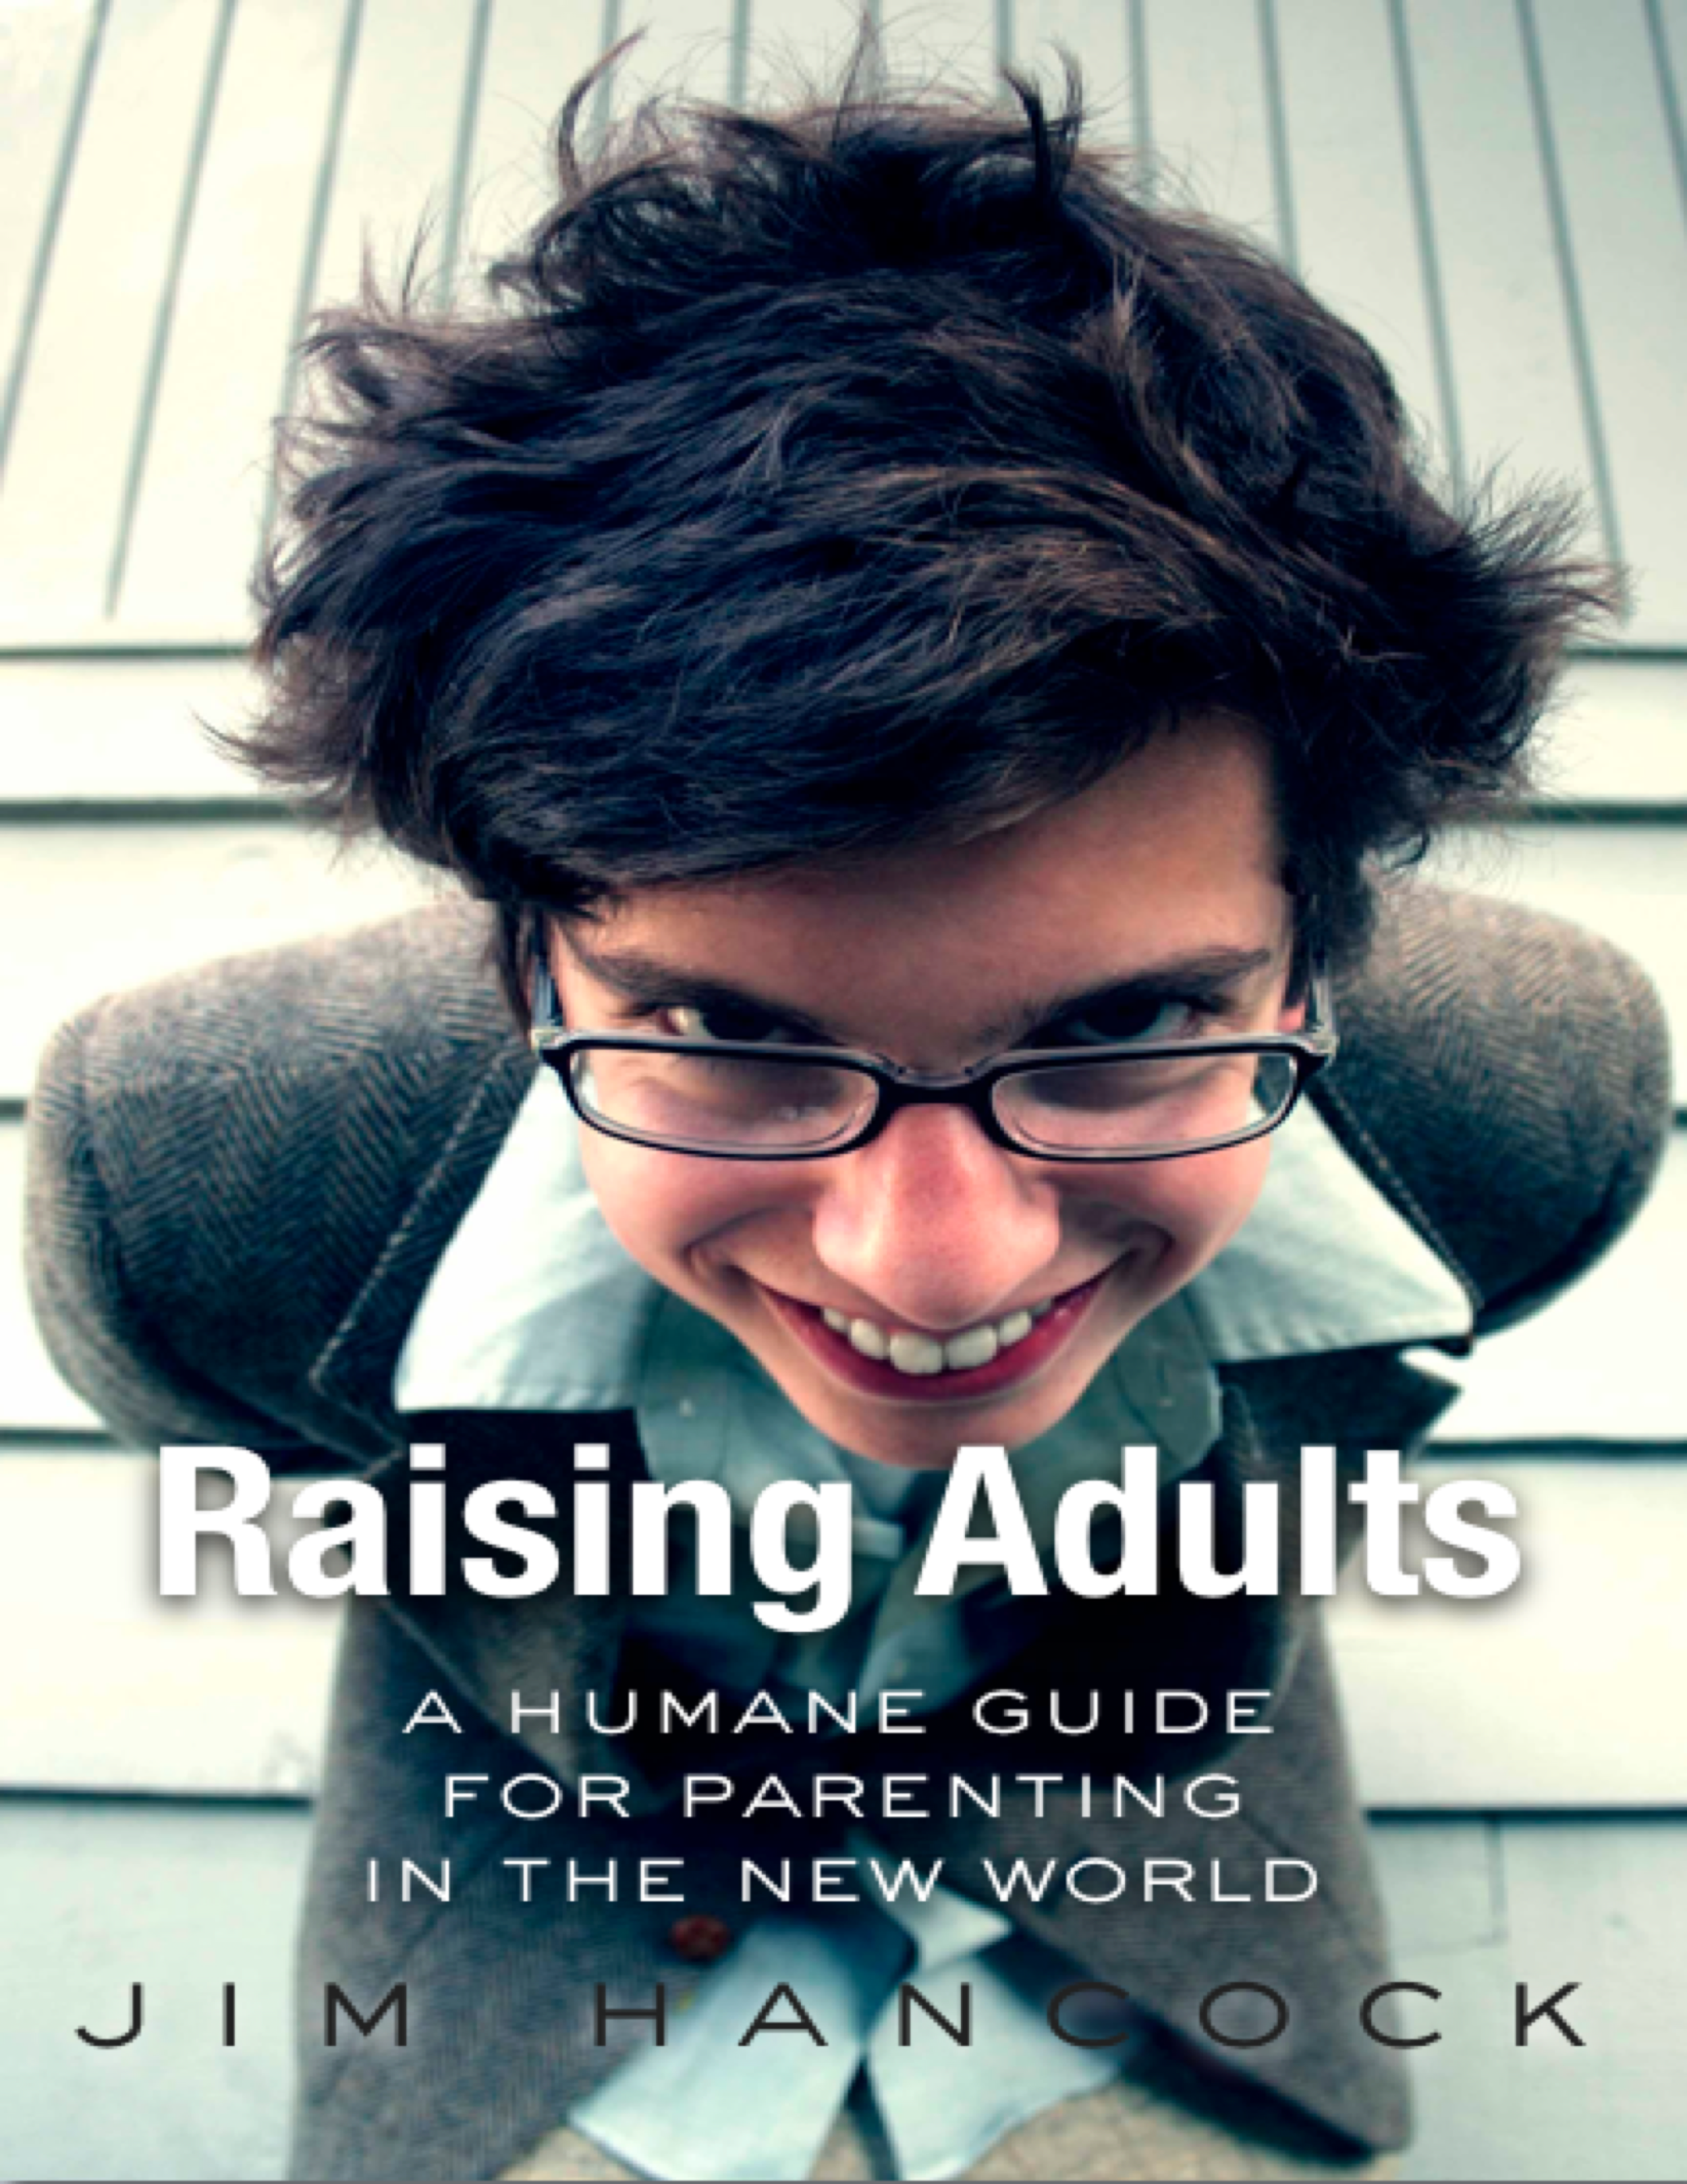 Adults Cover 05.23.17 612x792.png